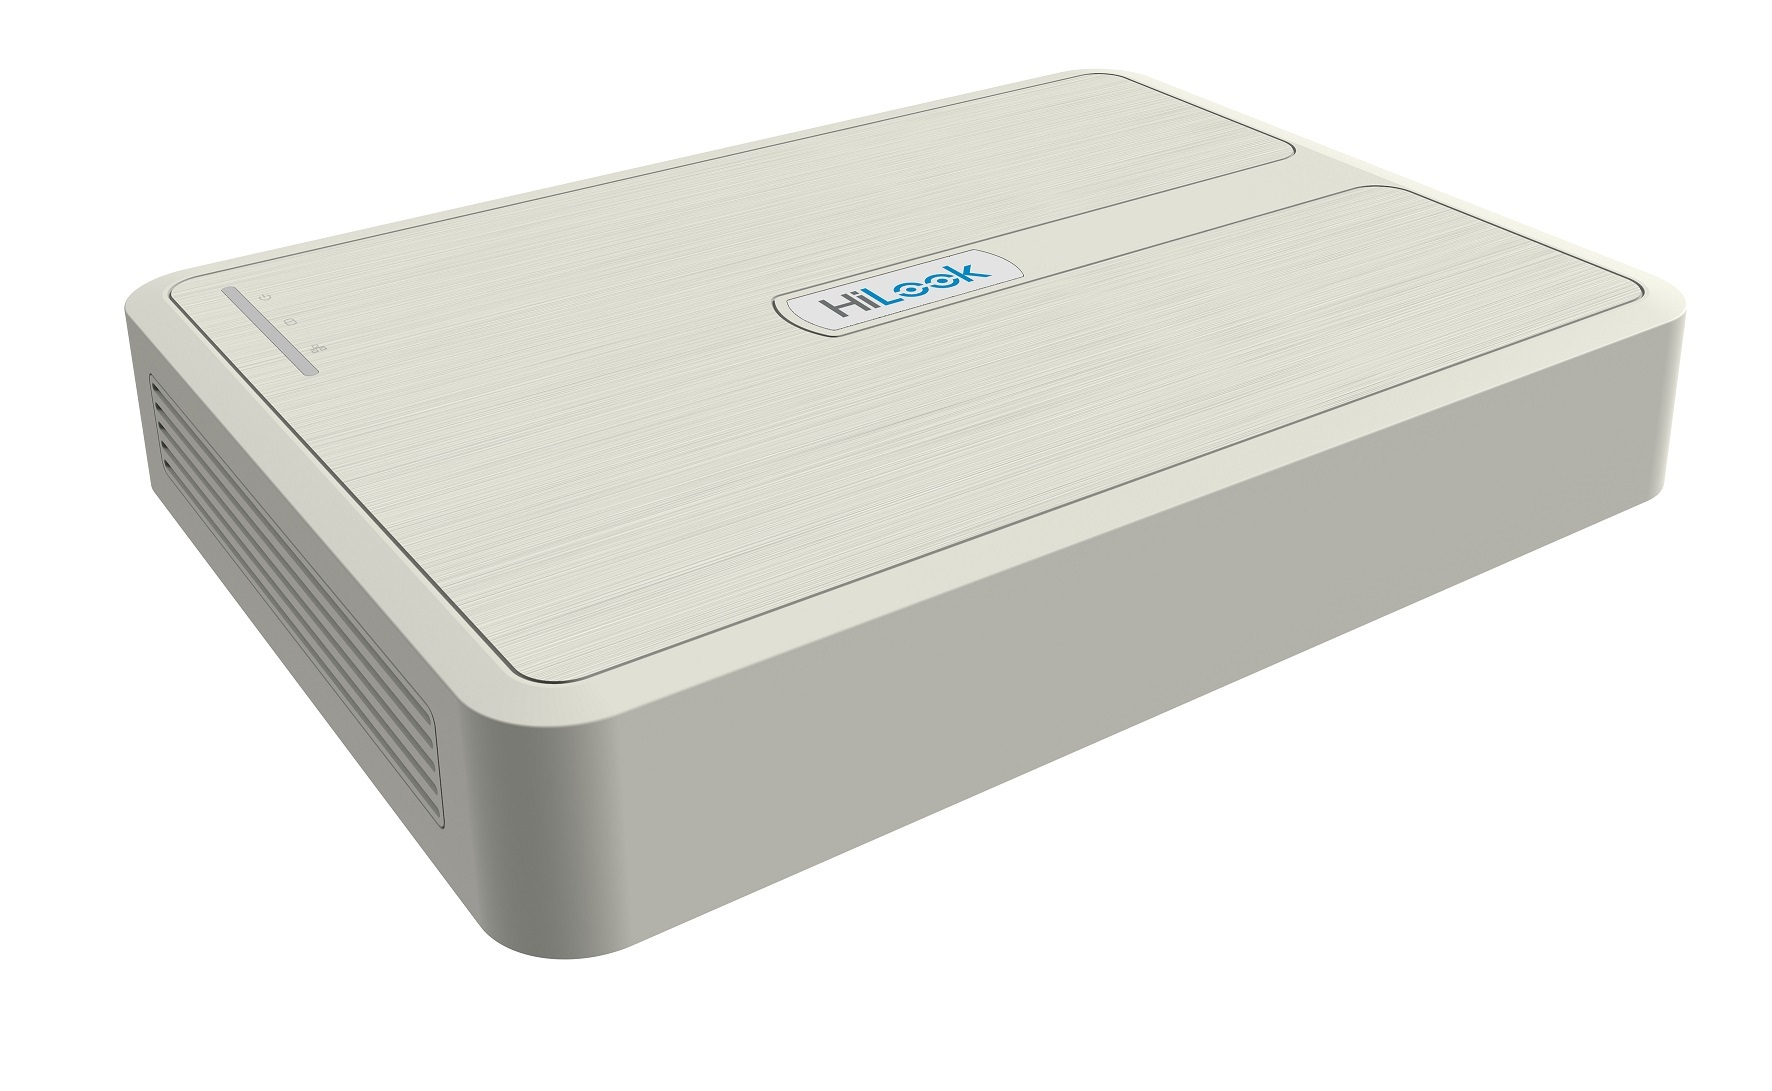 Hilook By Hikvision 8 Ch 1080P & 4MP IP Network NVR PoE Recorder H.264+ -WD 2TB HDD